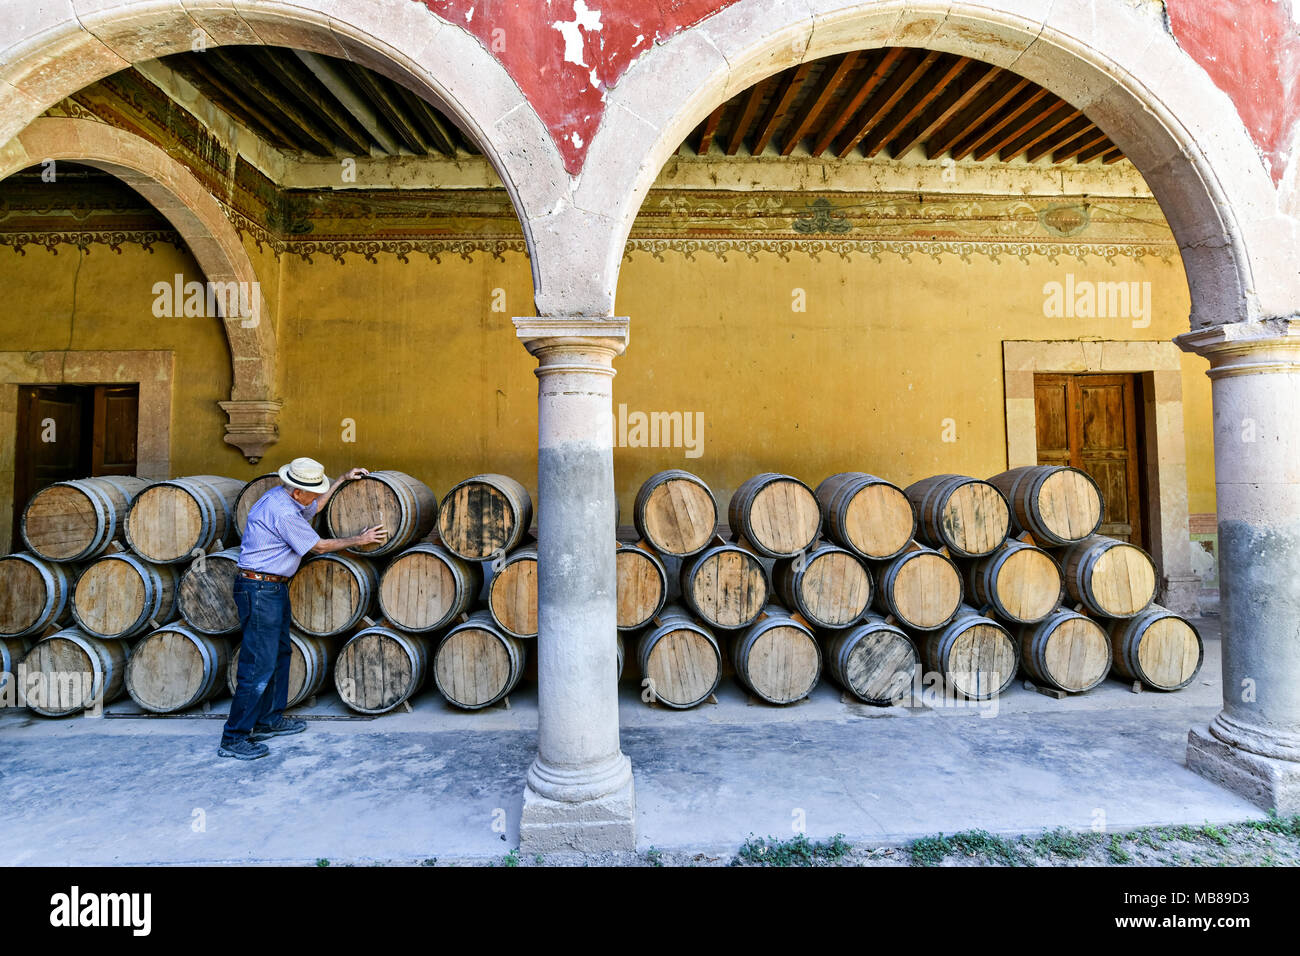 A man checks the oak barrels filled with Mezcal as they age under the derelict arches of the Hacienda de Jaral de Berrio in Jaral de Berrios, Guanajuato, Mexico. The abandoned Jaral de Berrio hacienda was once the largest in Mexico and housed over 6,000 people on the property and is credited with creating Mescal. - Stock Image